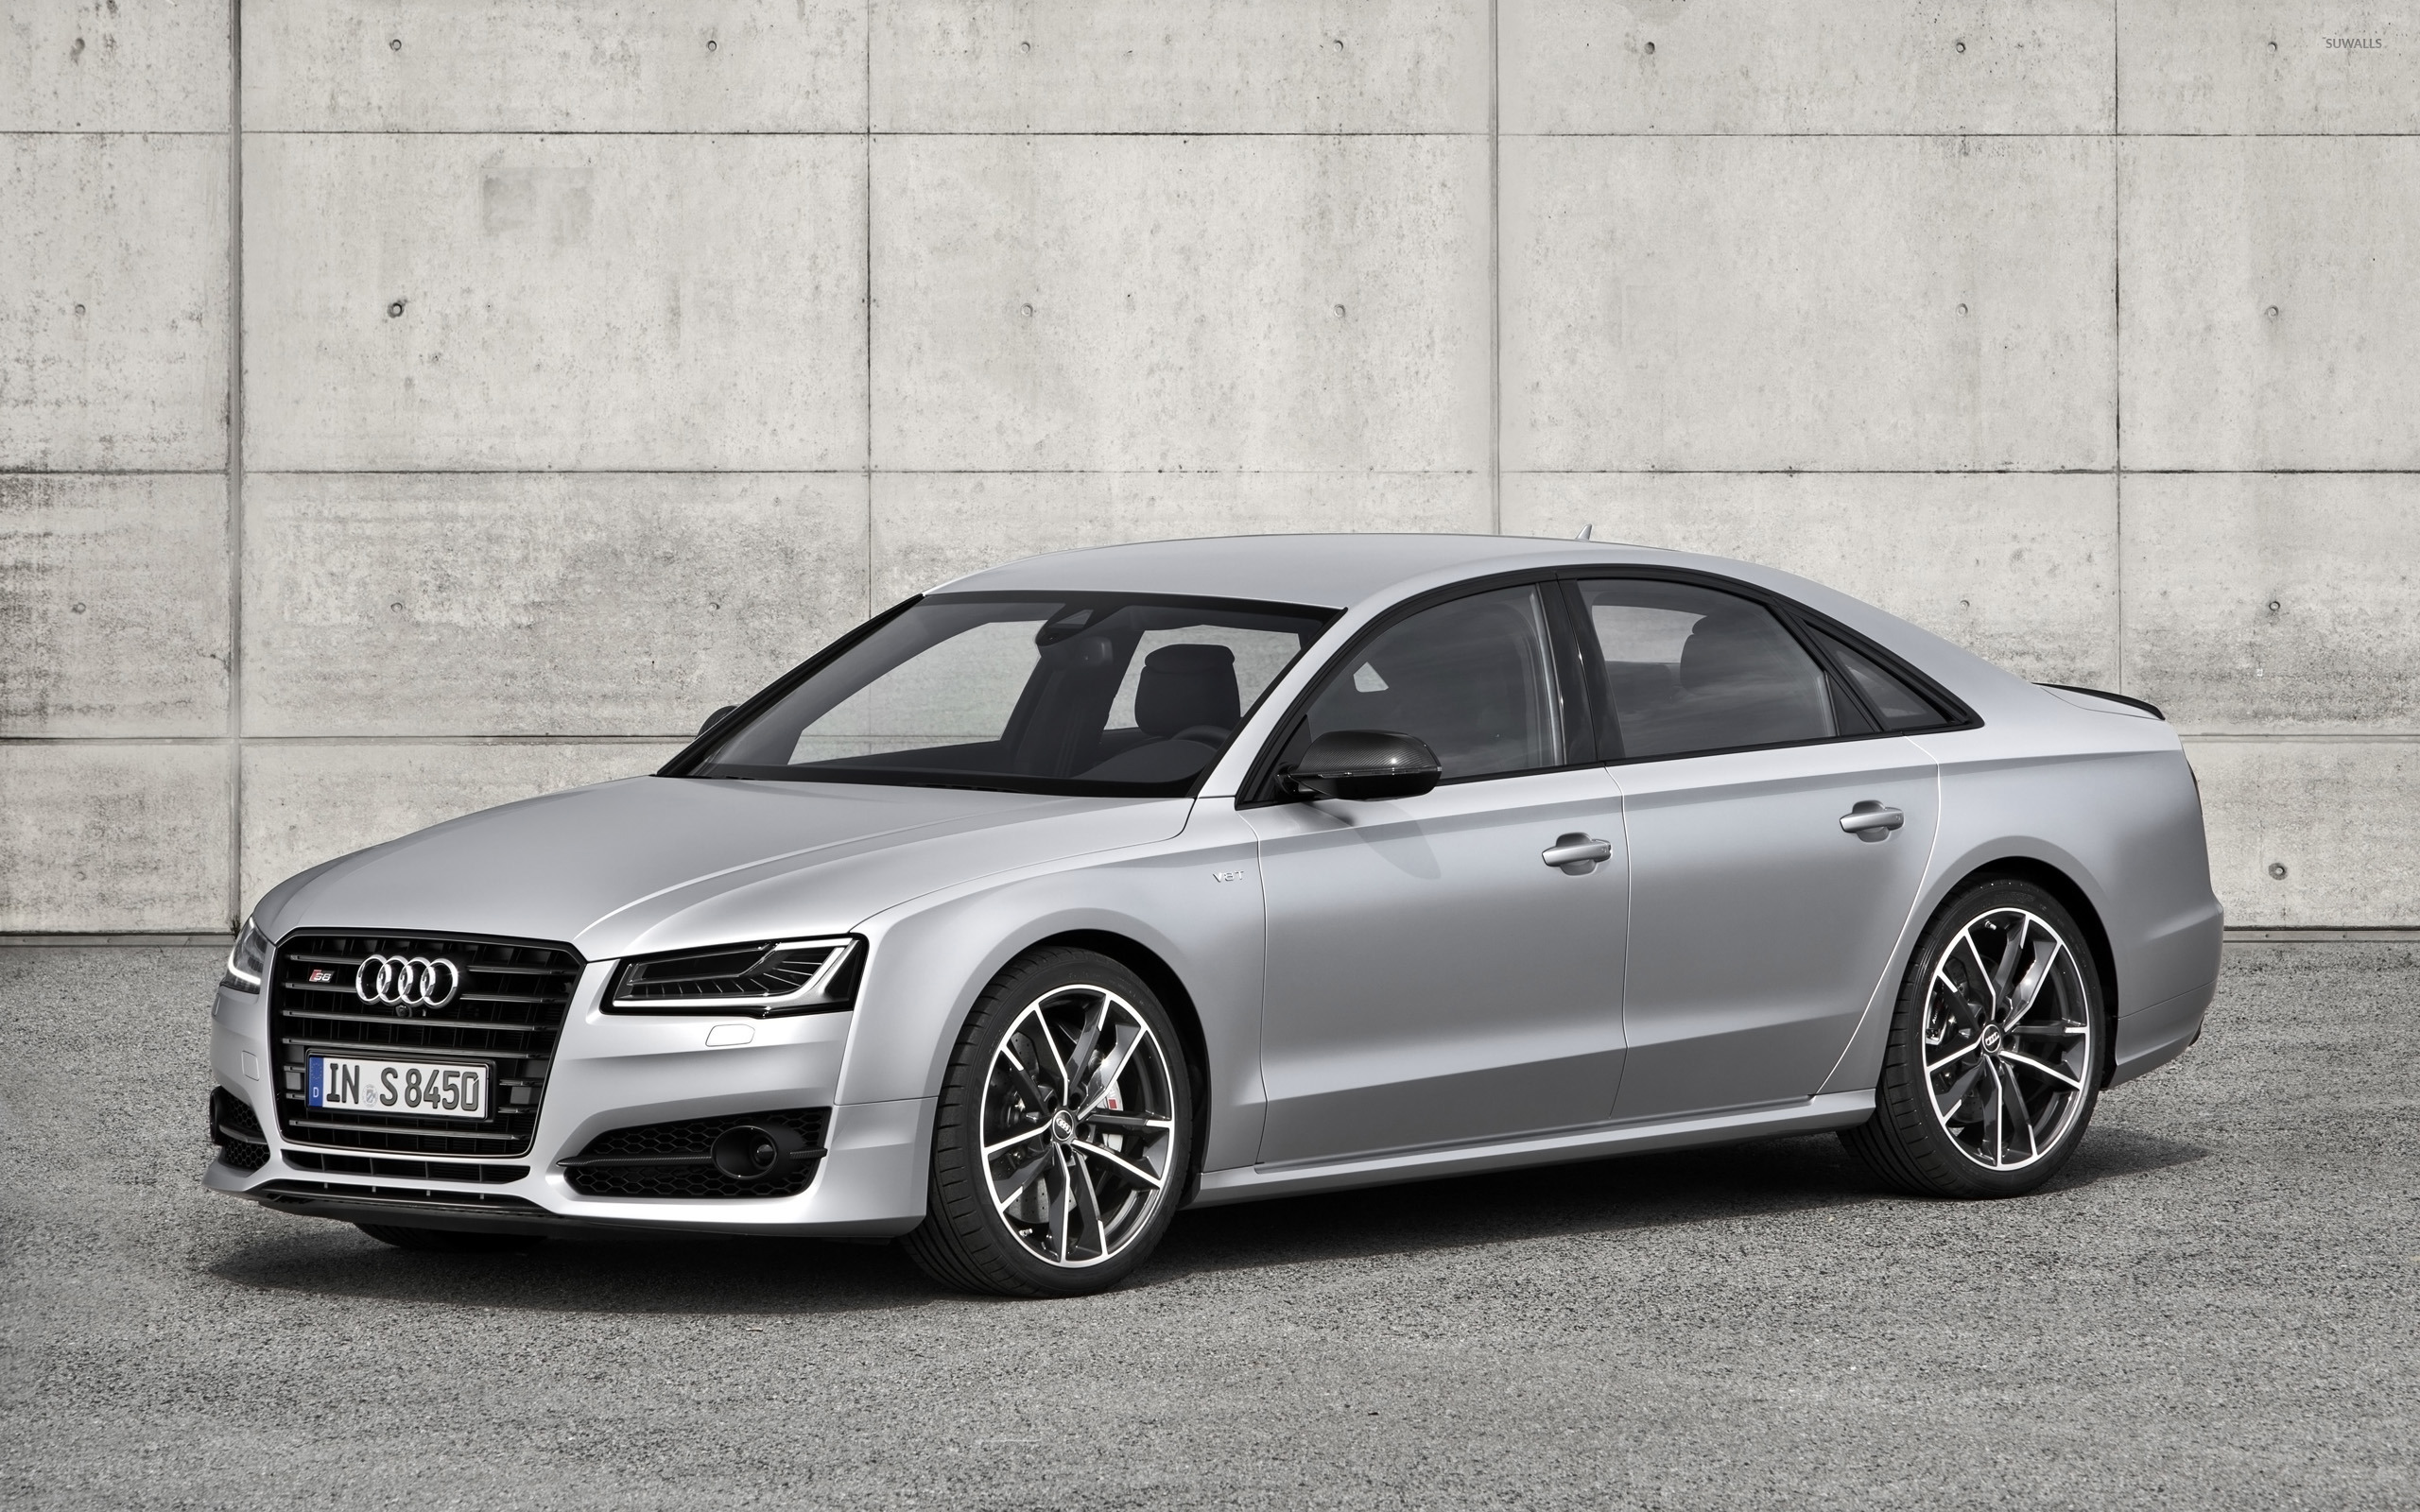 2016 Audi S8 Front Side View Wallpaper